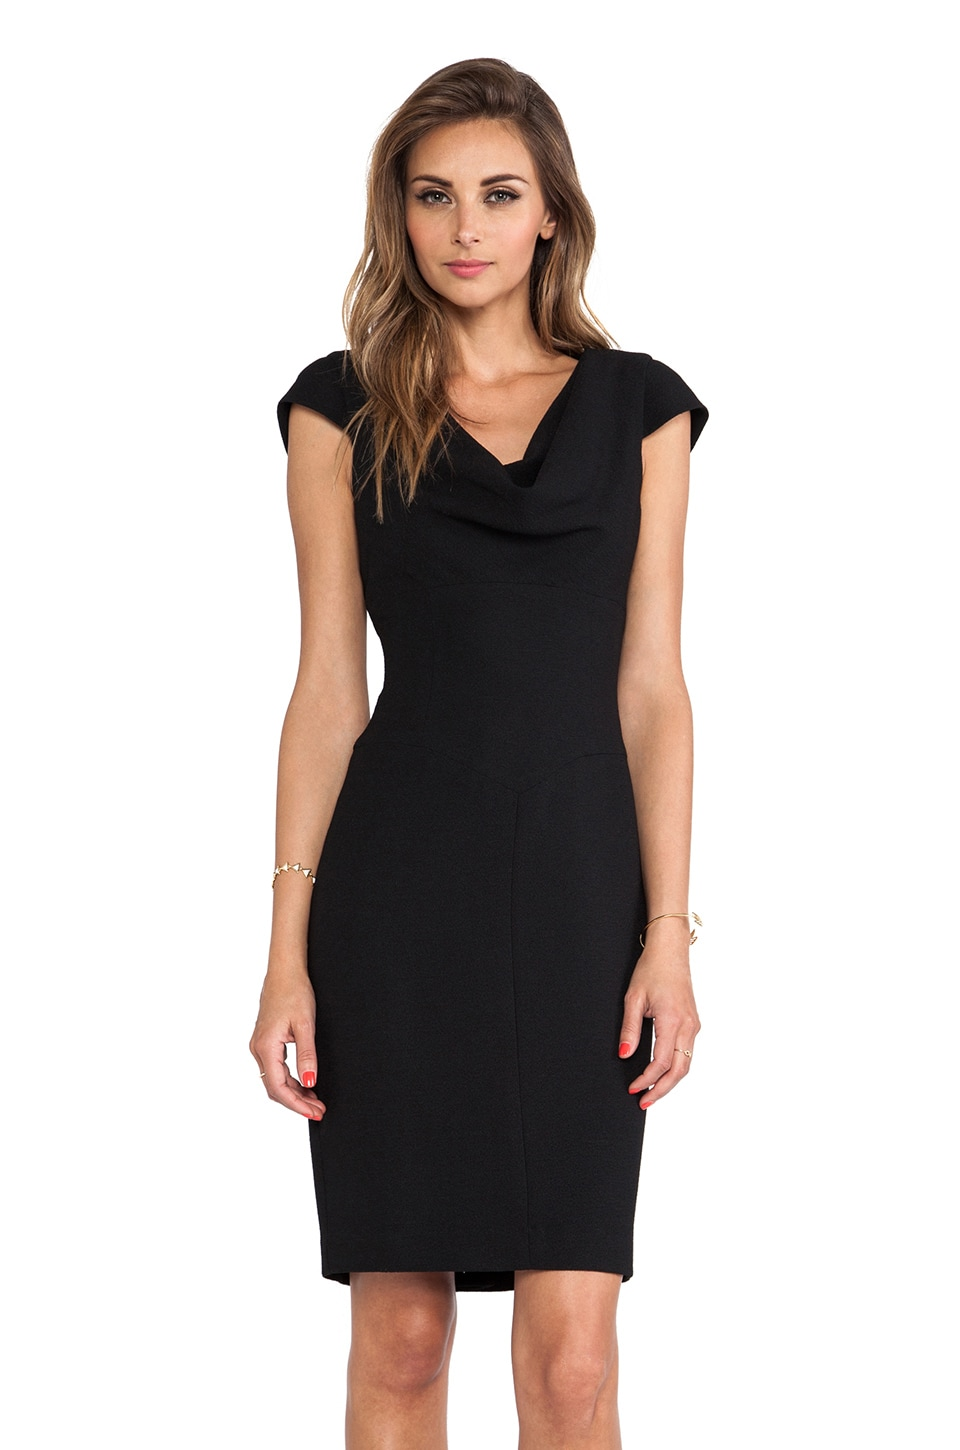 Black Halo Gretchen Dress in Black